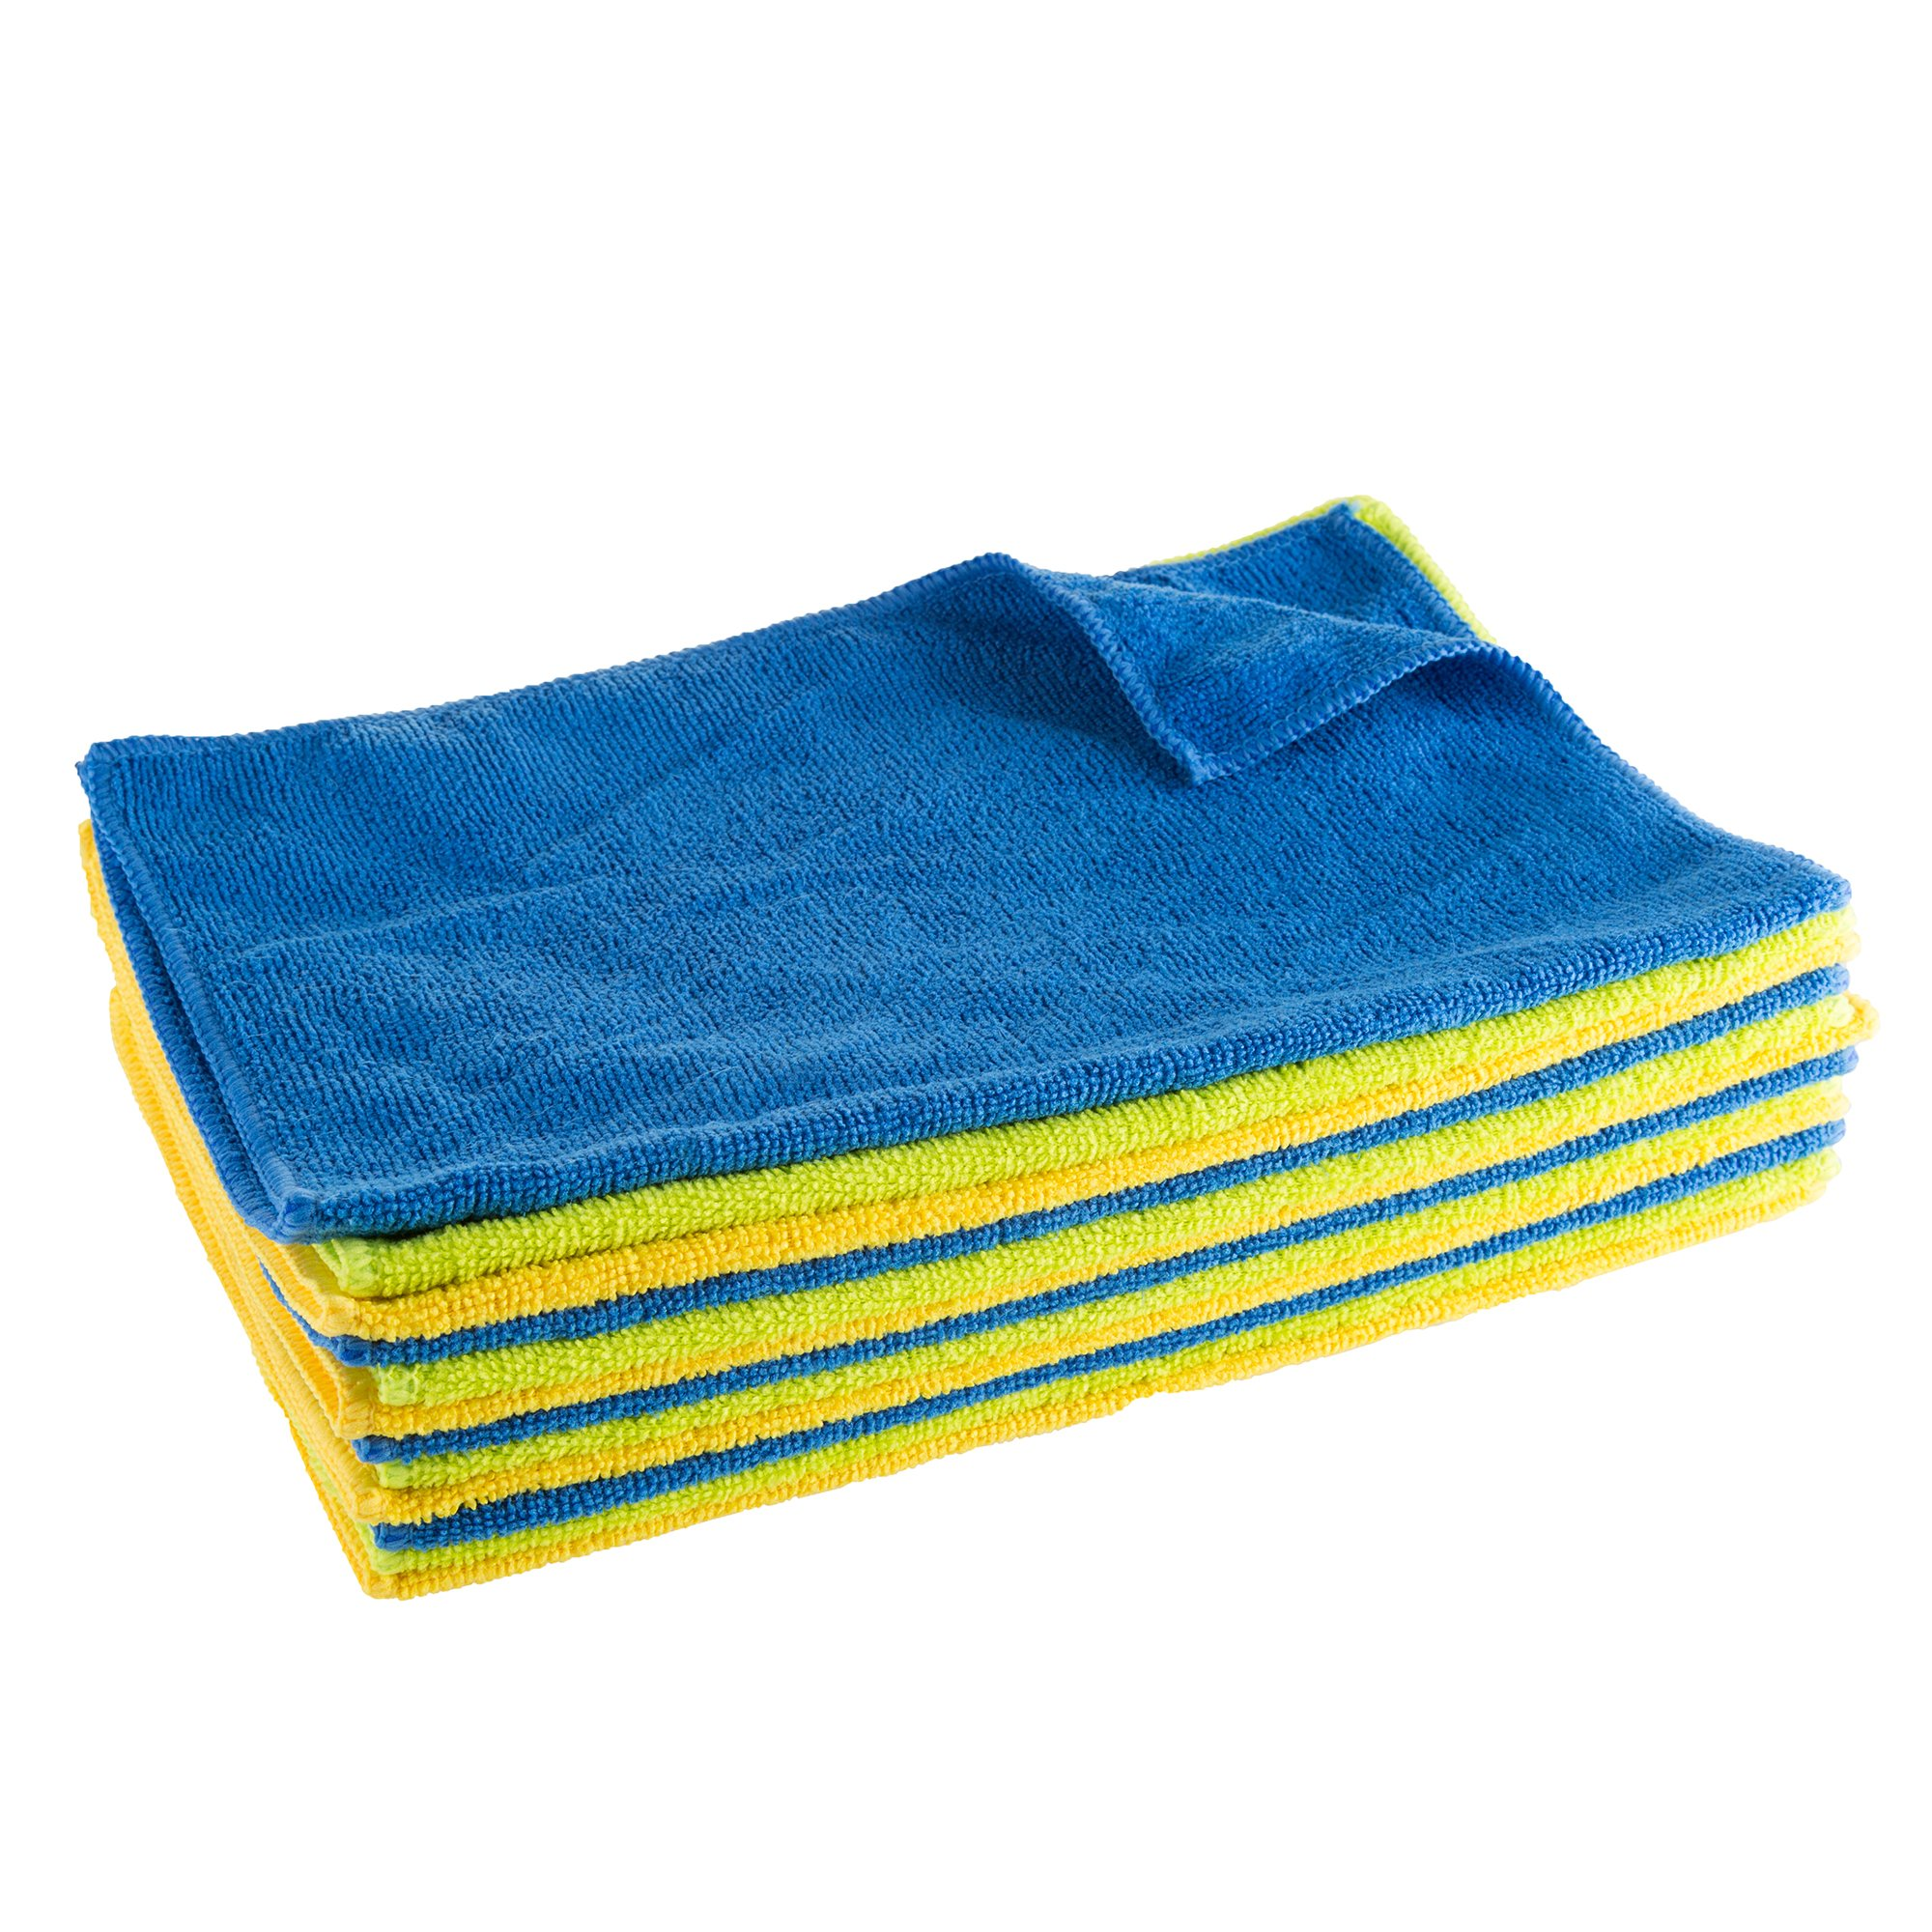 Stalwart Microfiber Cloths - 12 Count Cleaning Towels Dust Polish and Clean